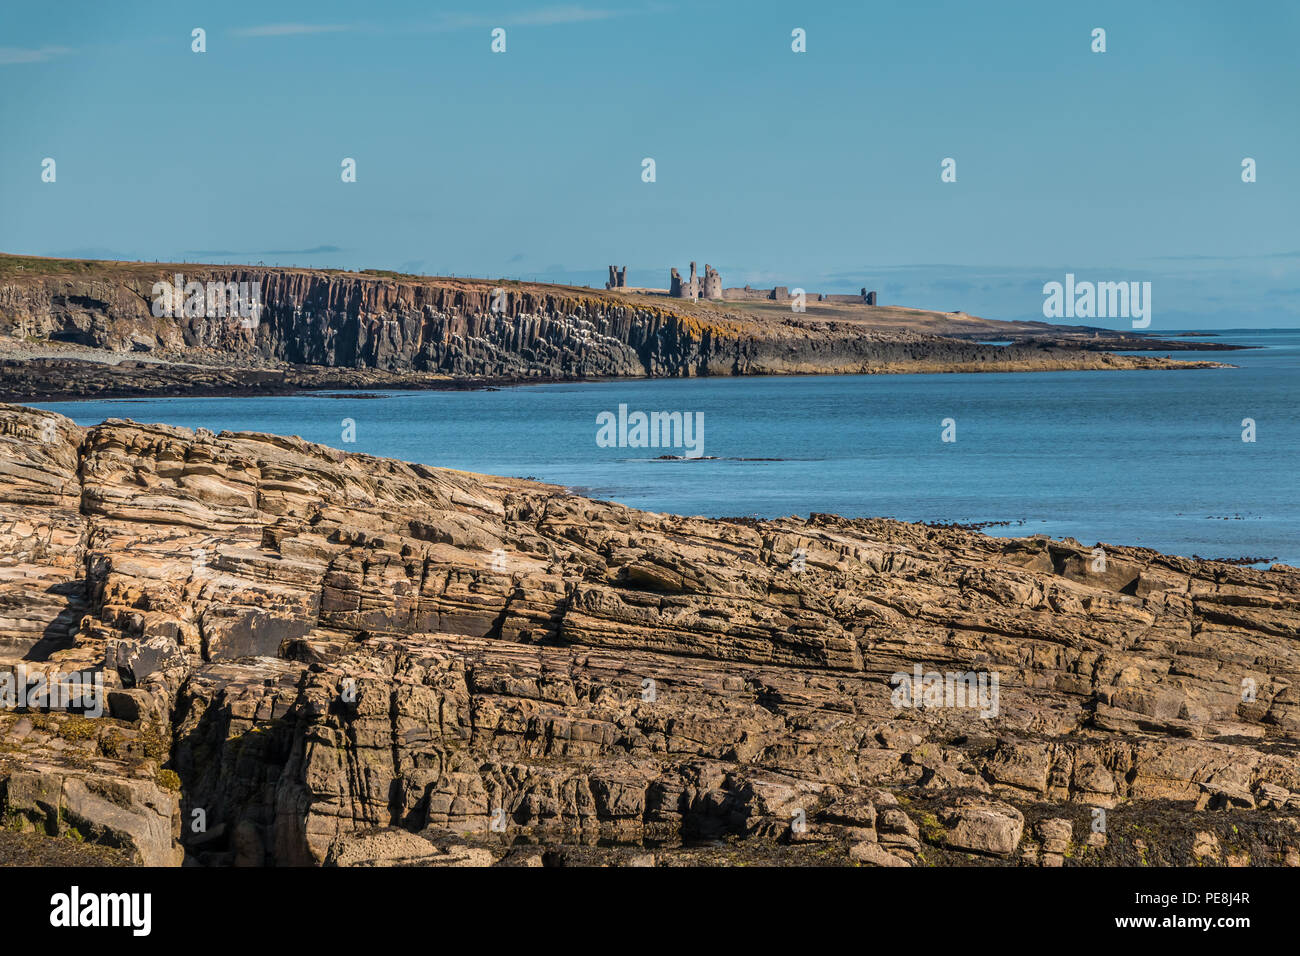 Northumberland Coast AONB landscape, Cullernose Point and Dunstanburgh Castle from Howick in summer under a clear blue sky - Stock Image